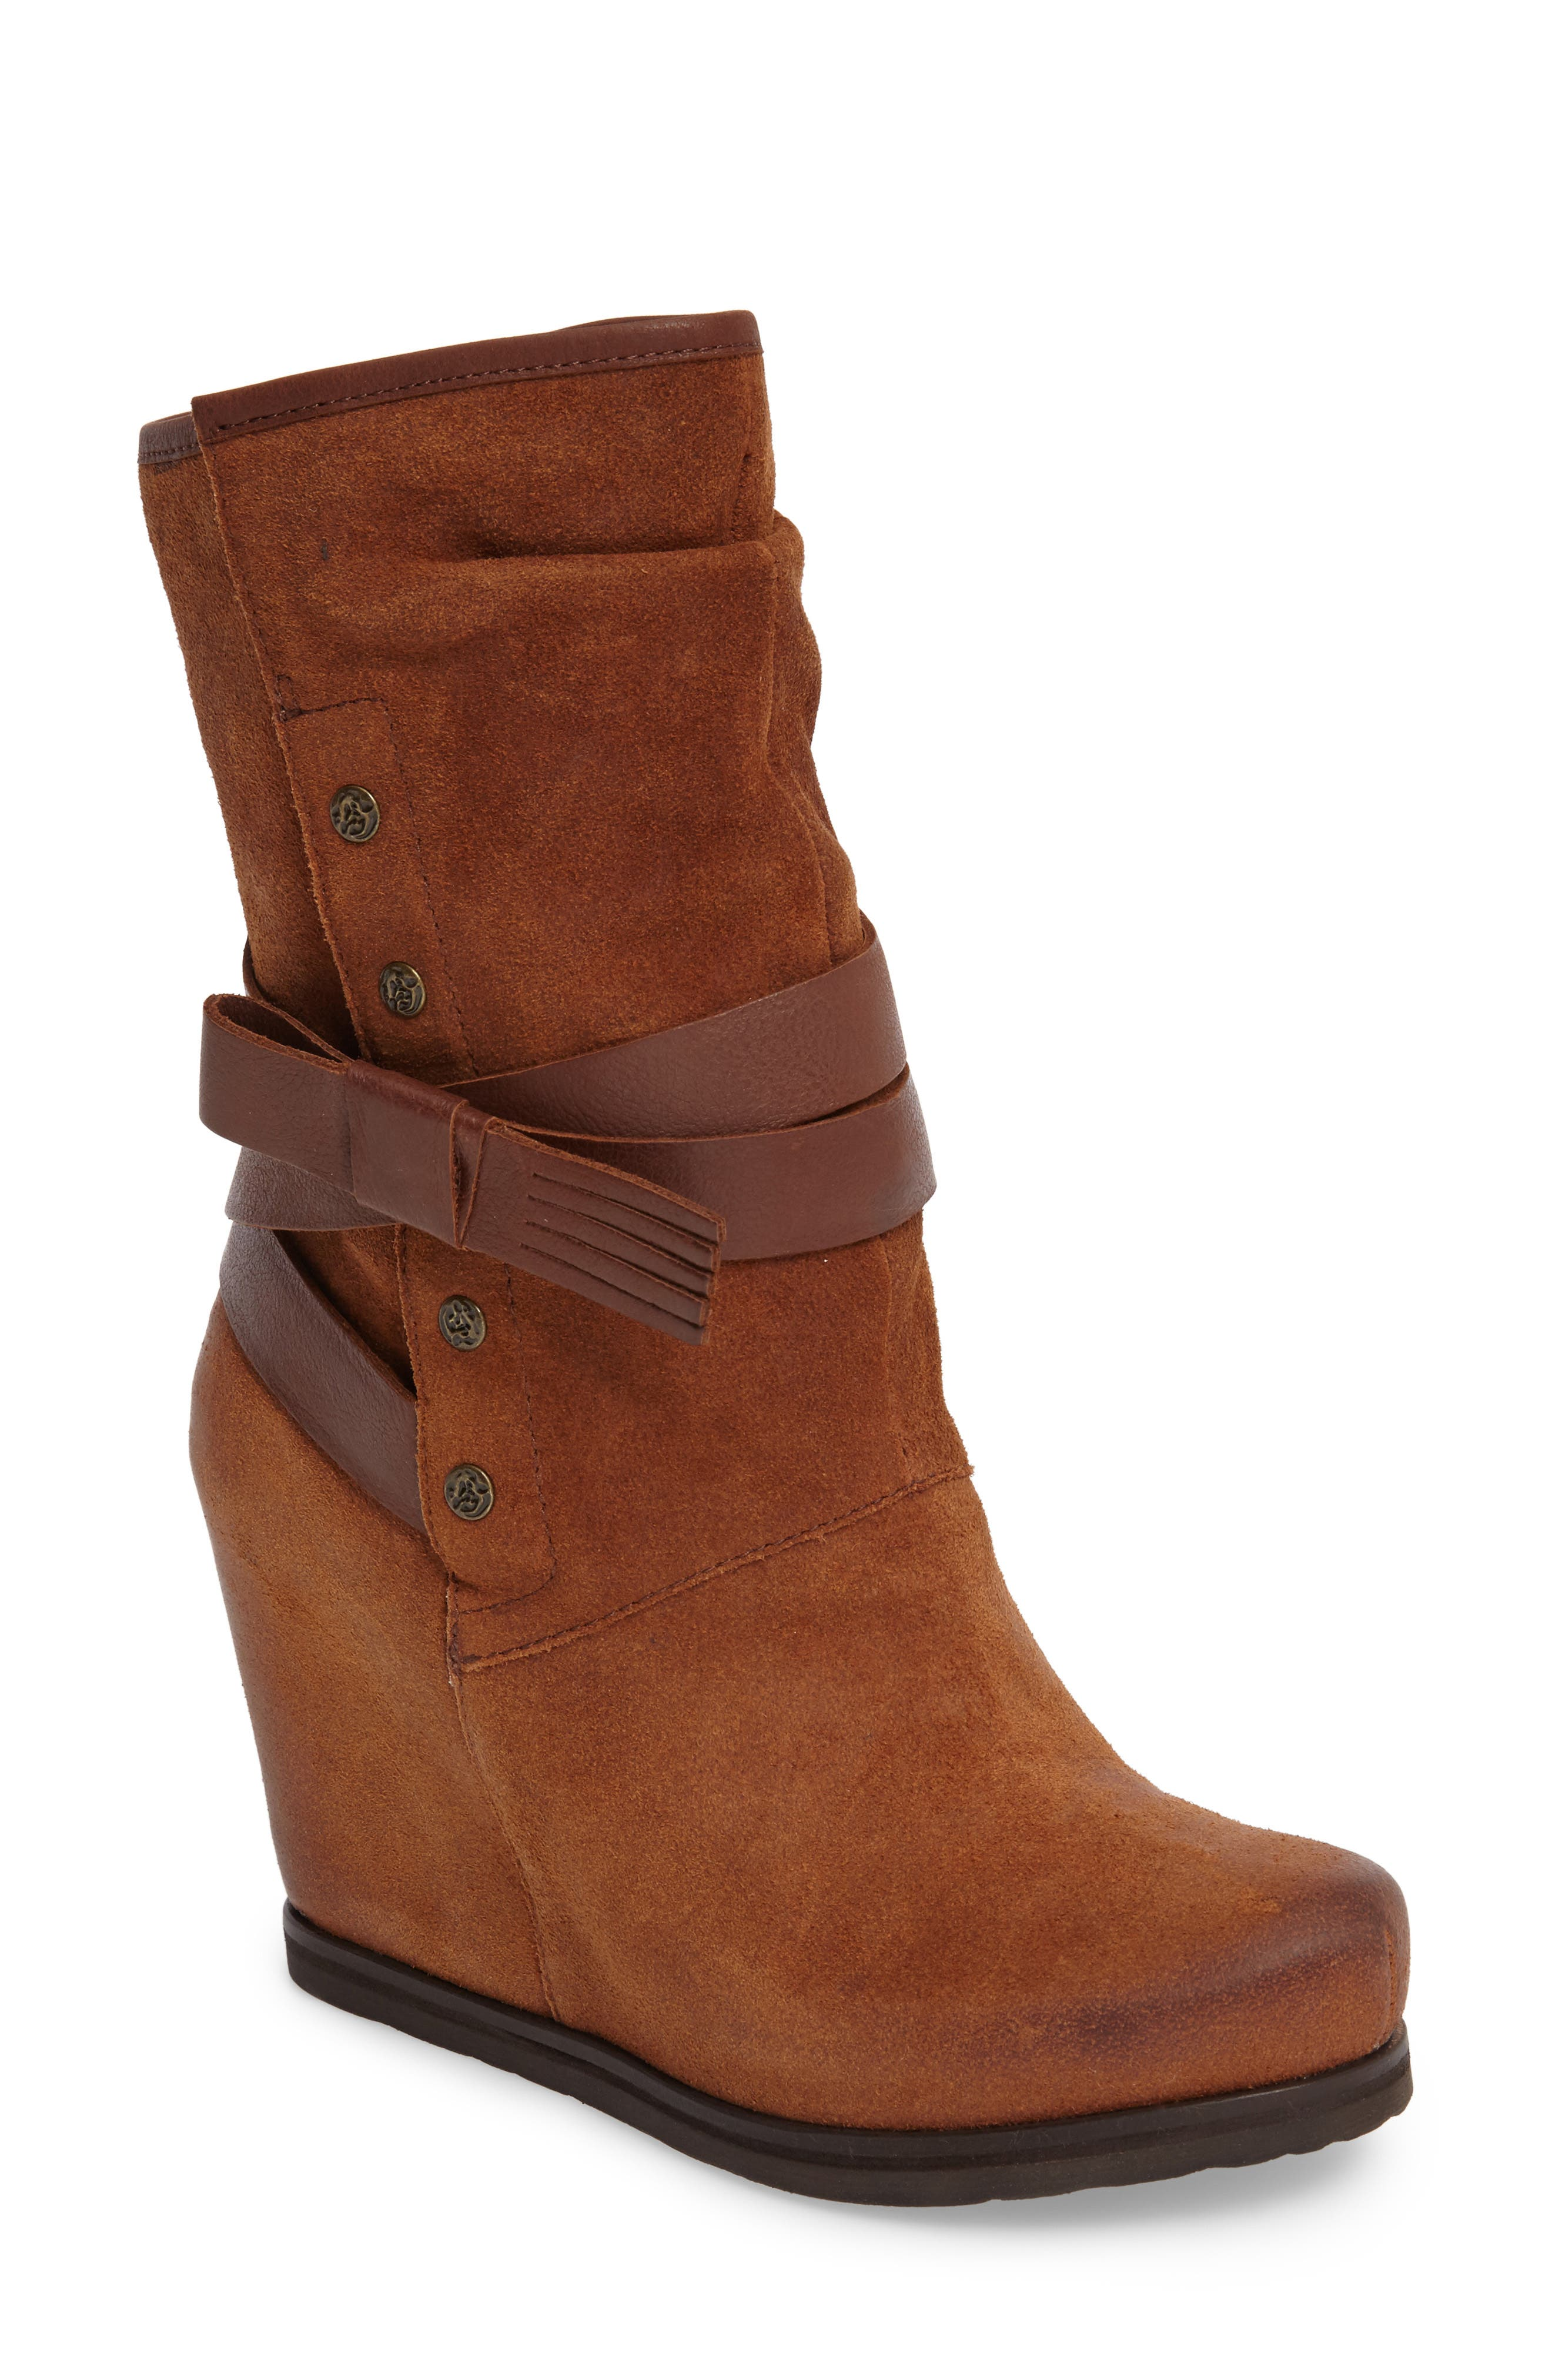 Main Image - OTBT Chakra Wedge Boot (Women)